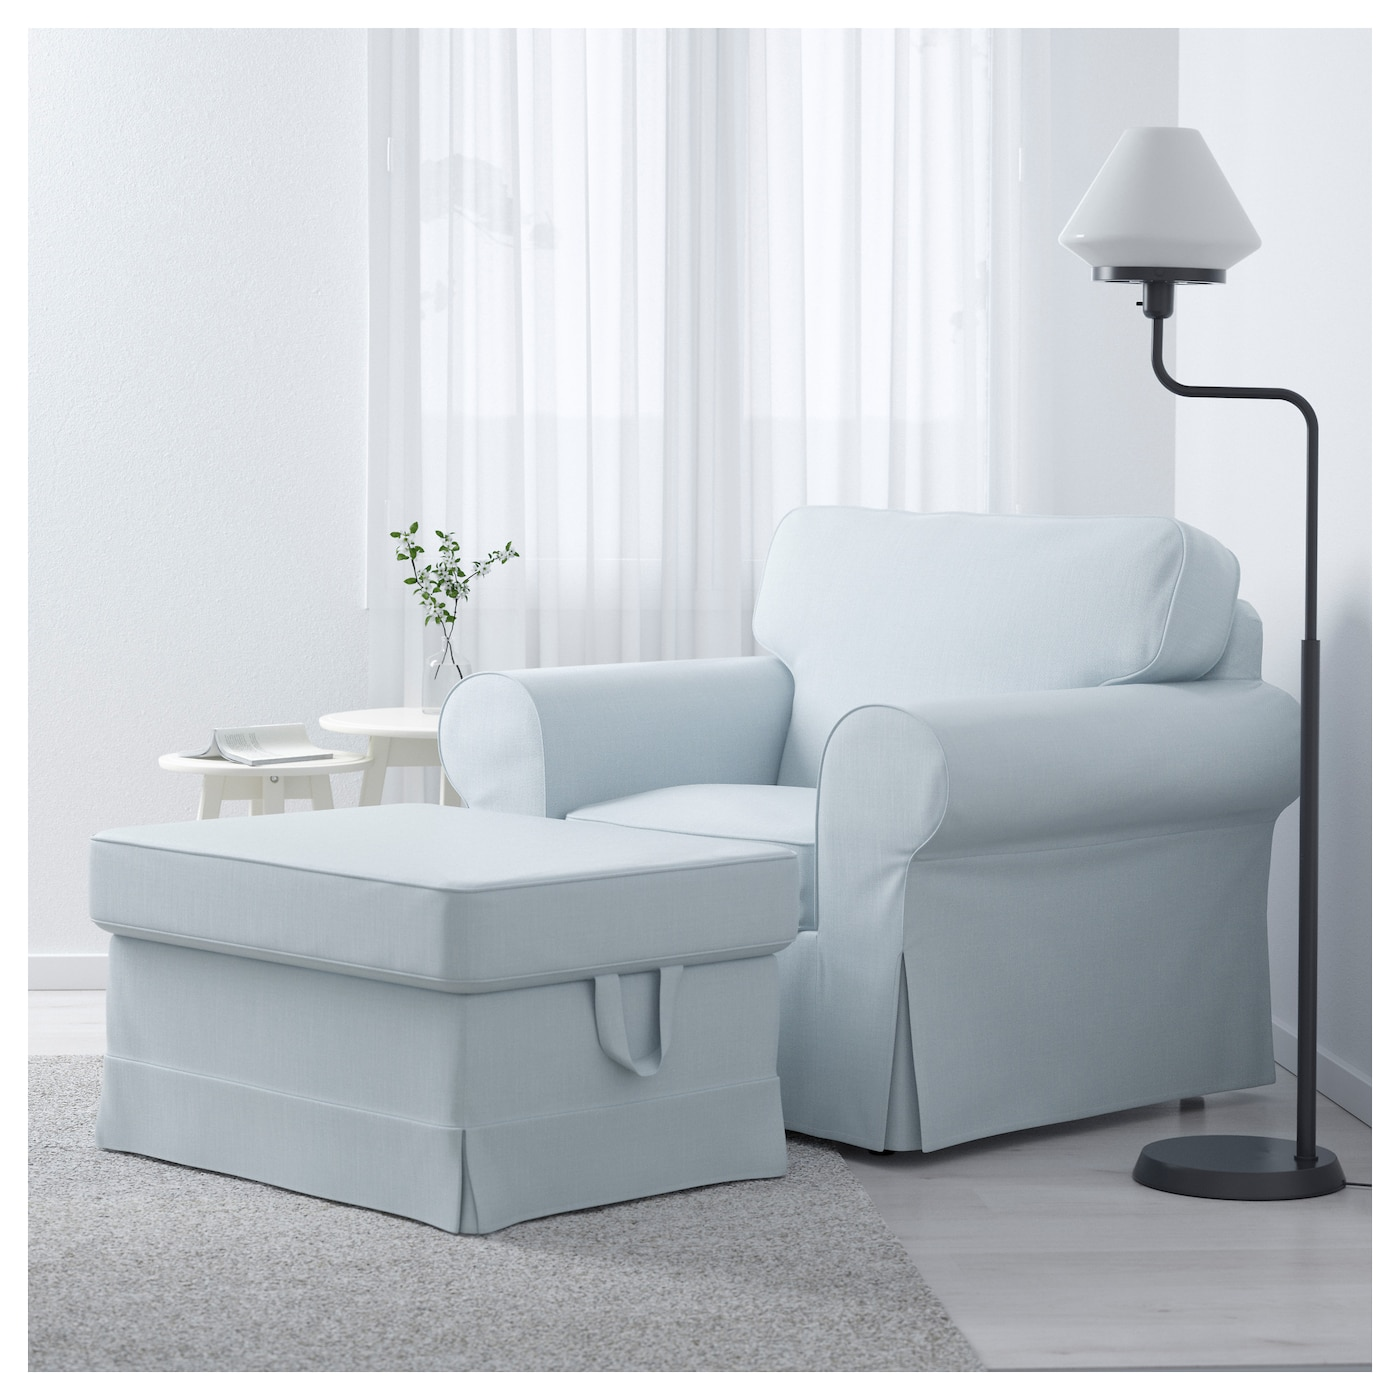 ektorp repose pieds nordvalla bleu clair ikea. Black Bedroom Furniture Sets. Home Design Ideas